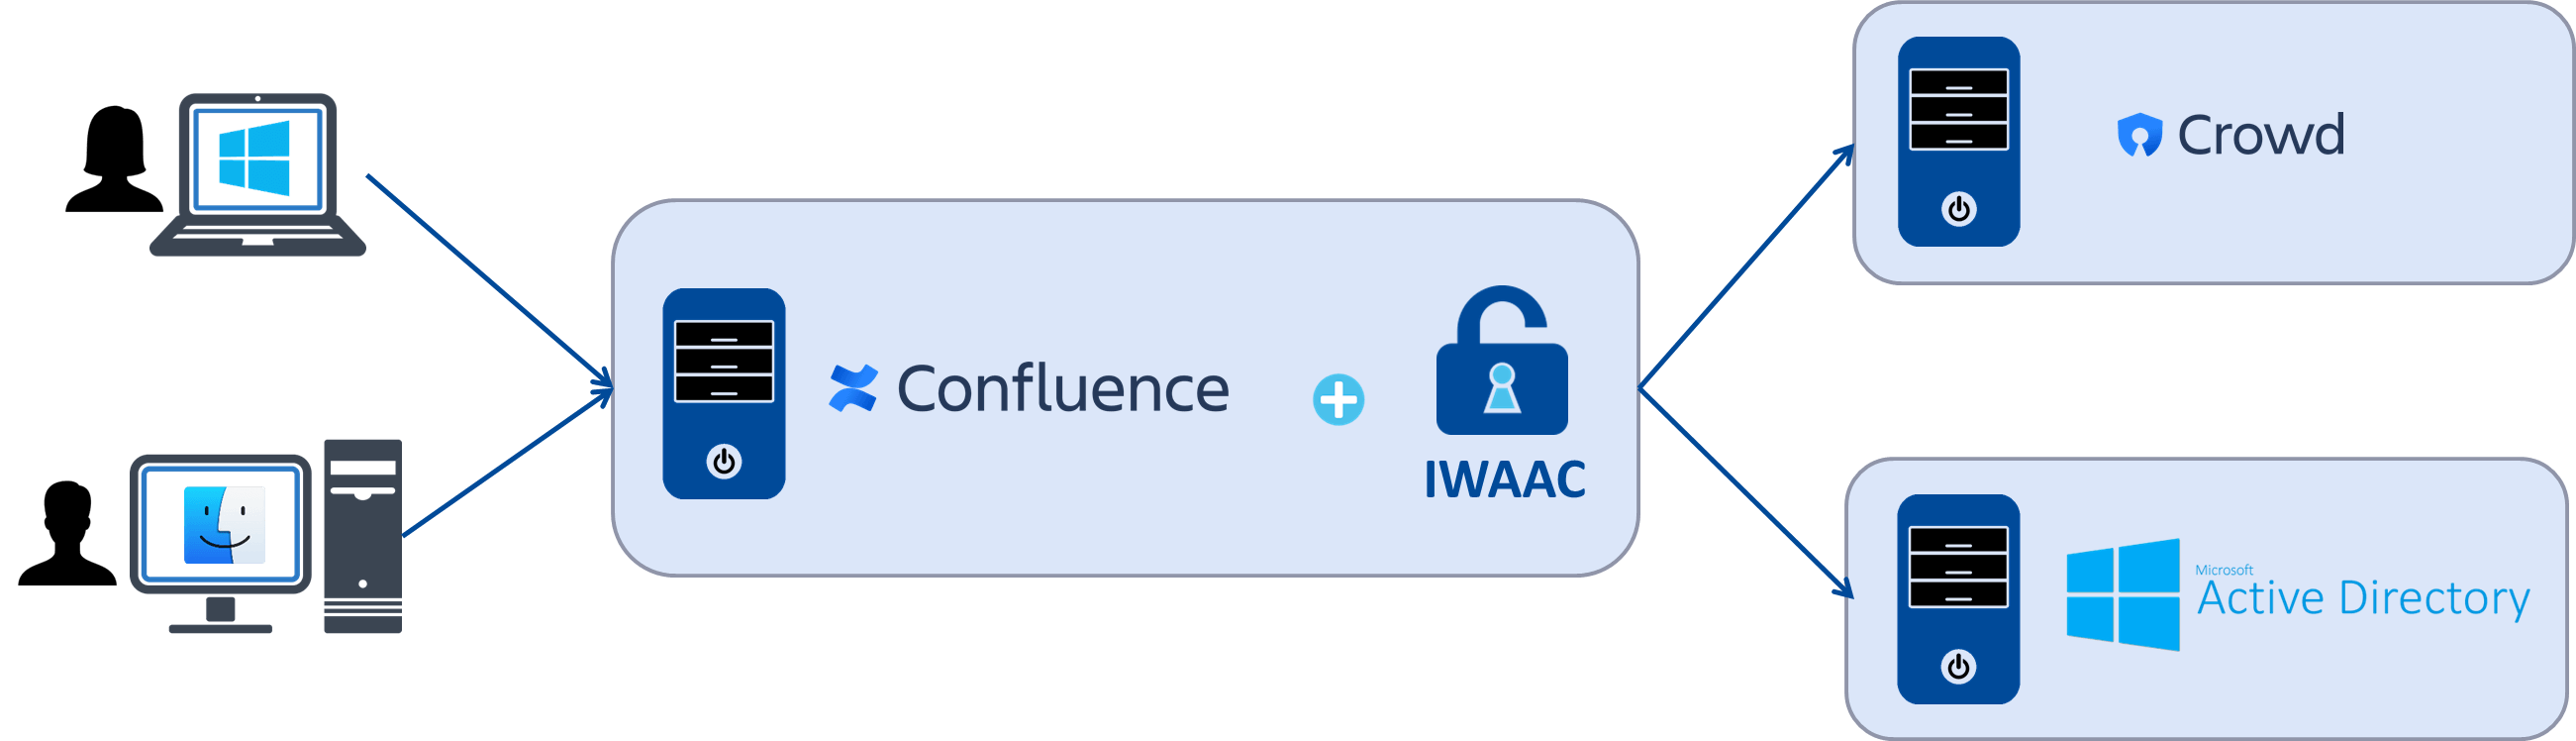 IWAAC Kerberos SSO Installation Guide for Confluence | Cleito